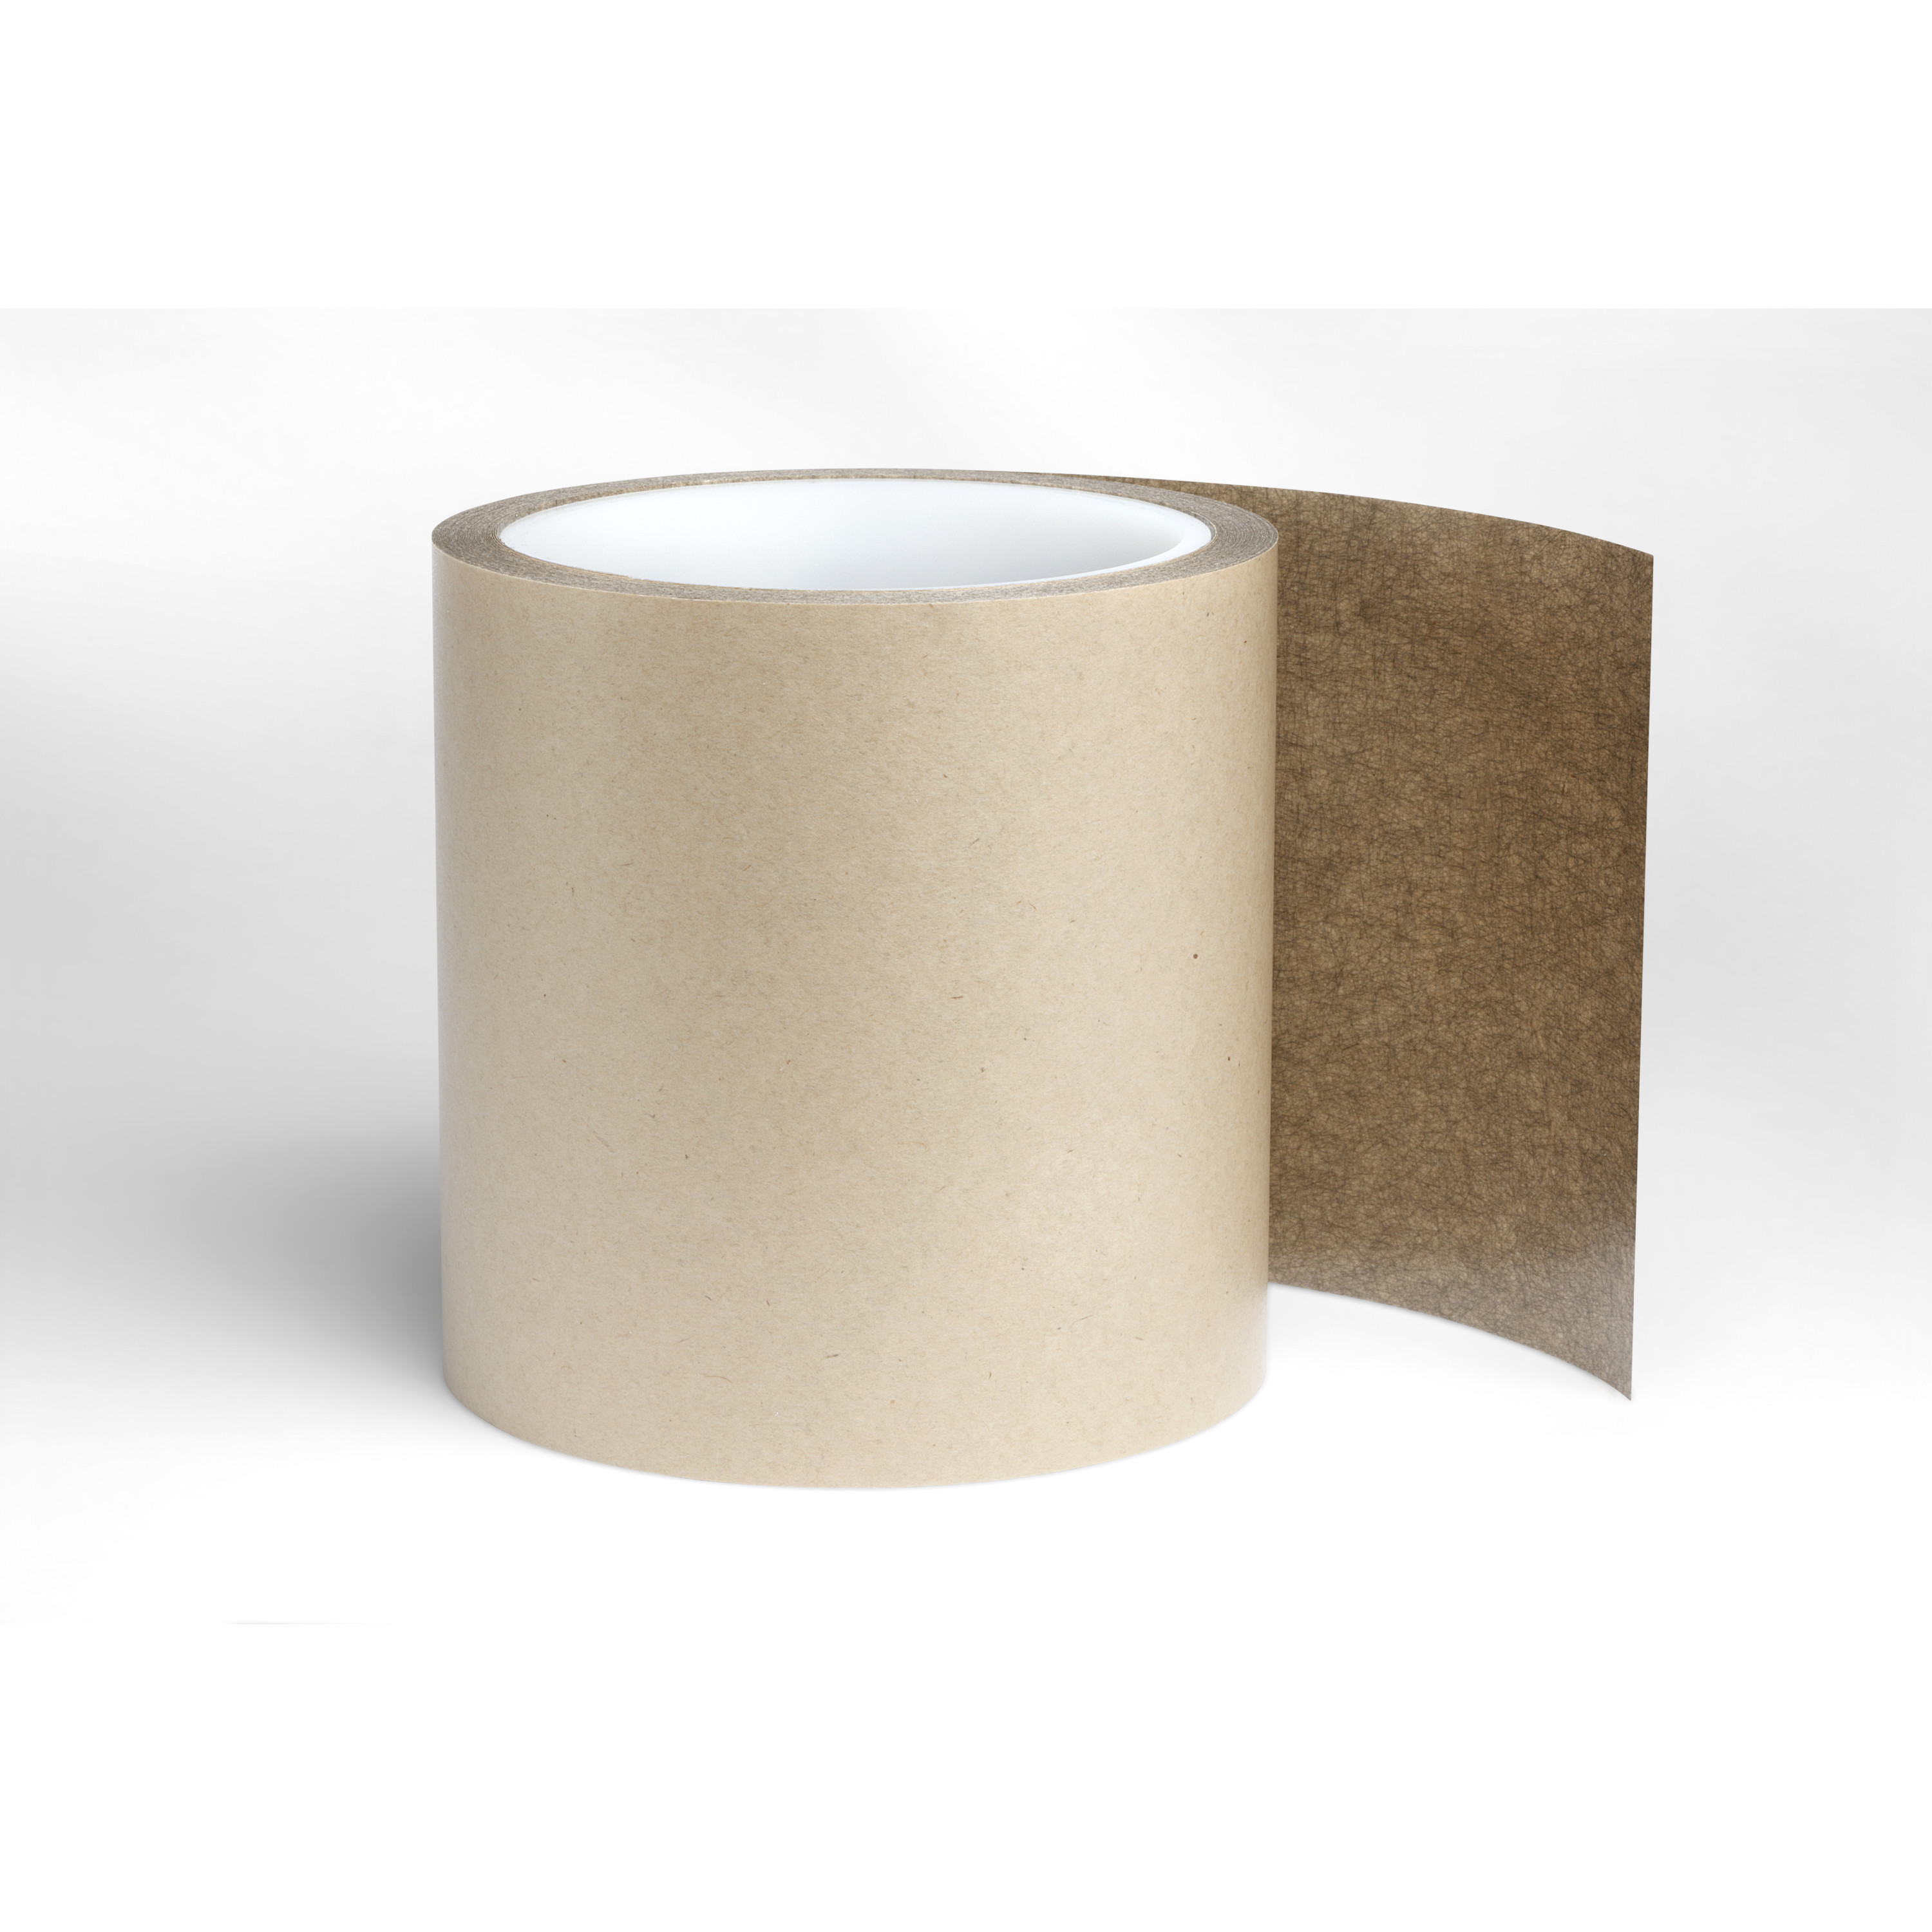 3M™ Electrically Conductive Adhesive Transfer Tape 9703, 12 in x 108 yds, 1/Inner, 2 per case Bulk